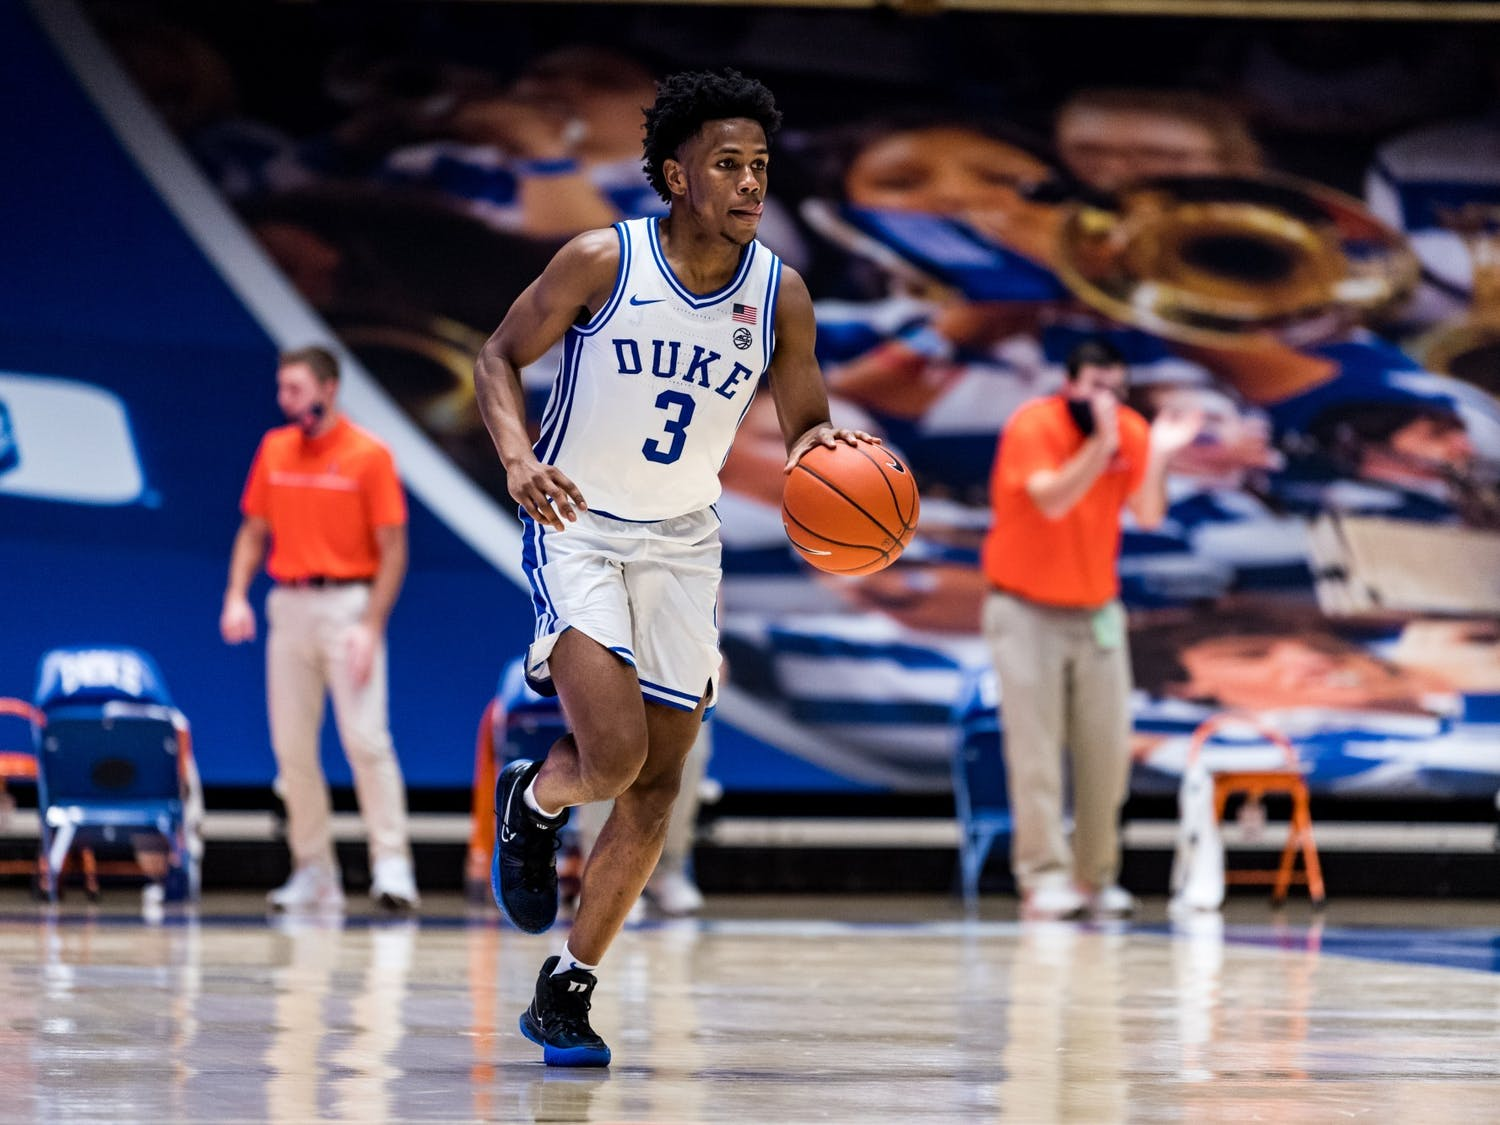 The emergence of freshman guard Jeremy Roach will help Duke move back up the rankings in ACC play.